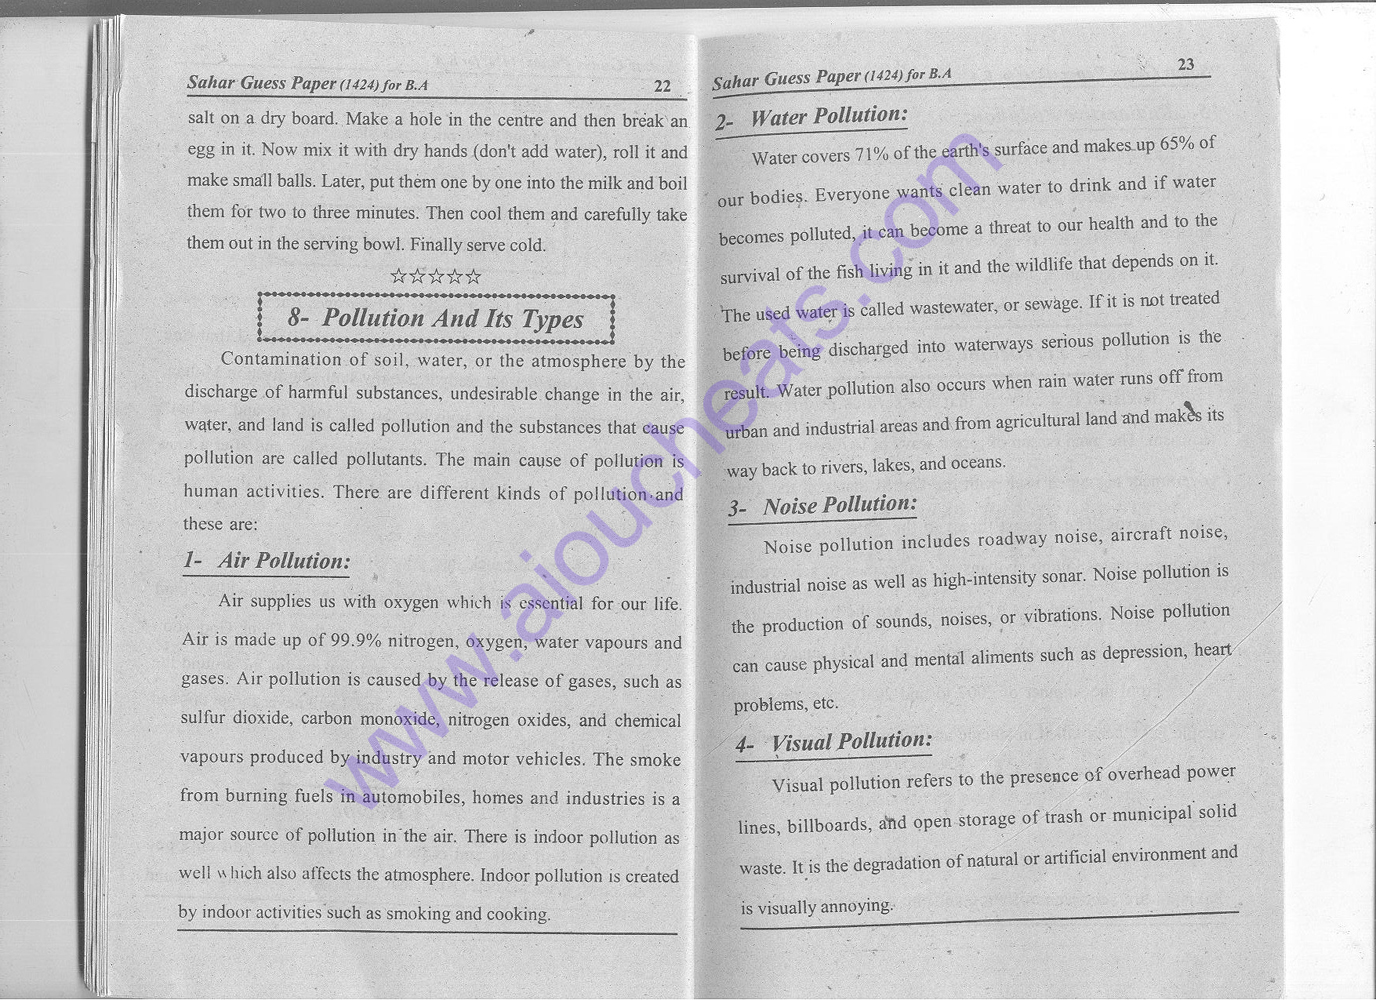 ba essay notes 2nd year english notes very easy and simple: most important questions to get through /pass annual exams (guess.